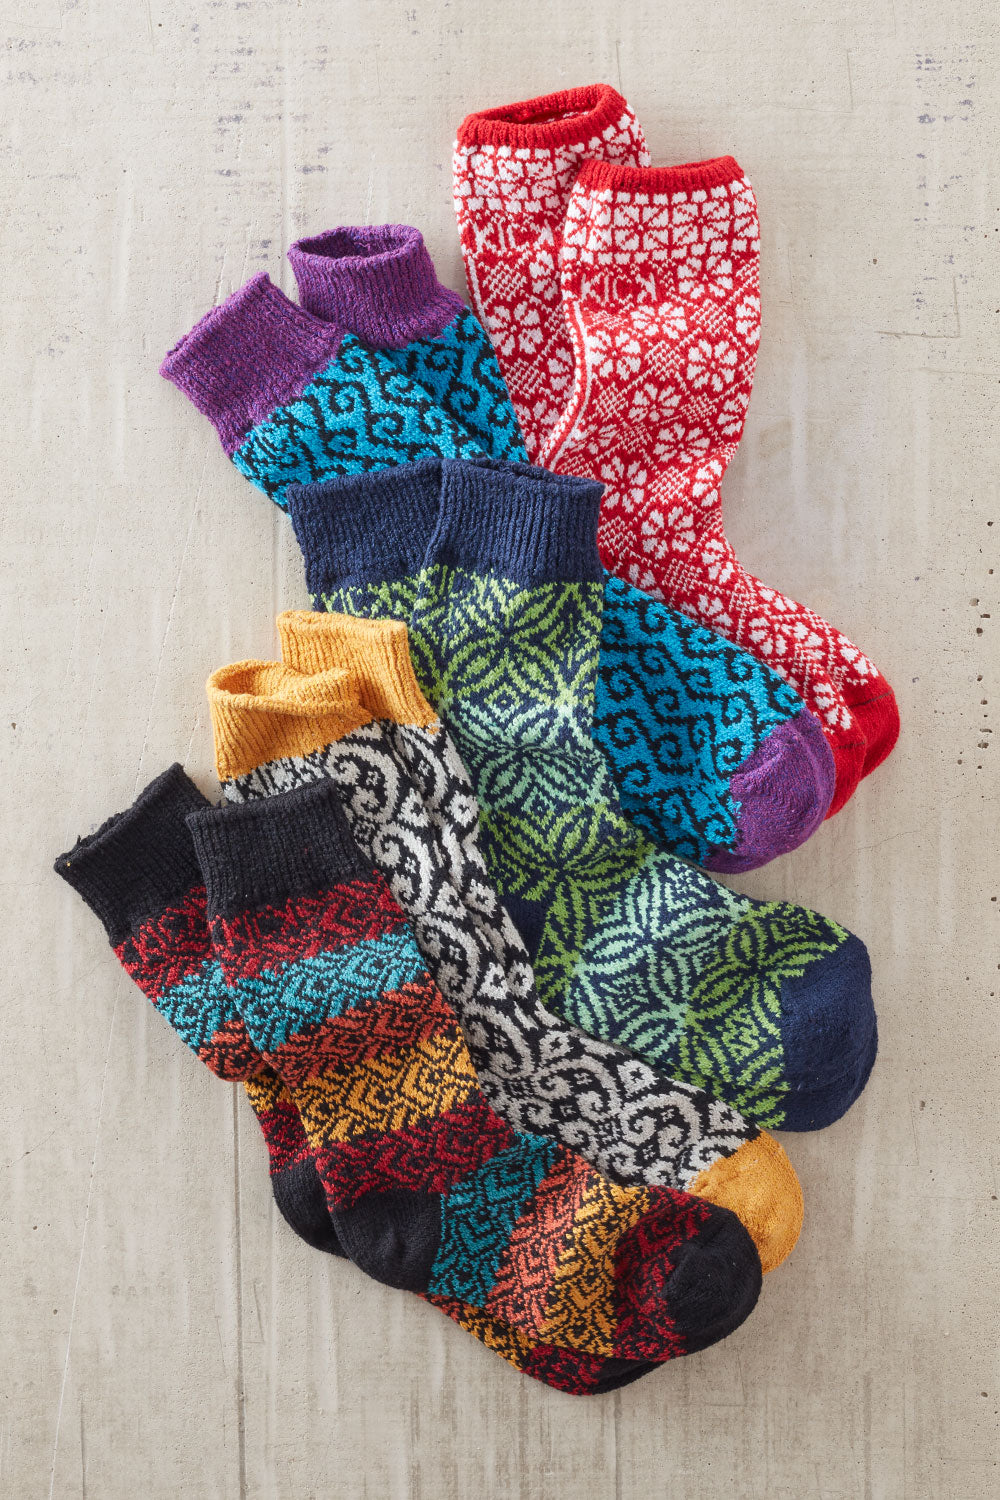 sidekick-unisex-womens-mens-usa-made-recycled-socks